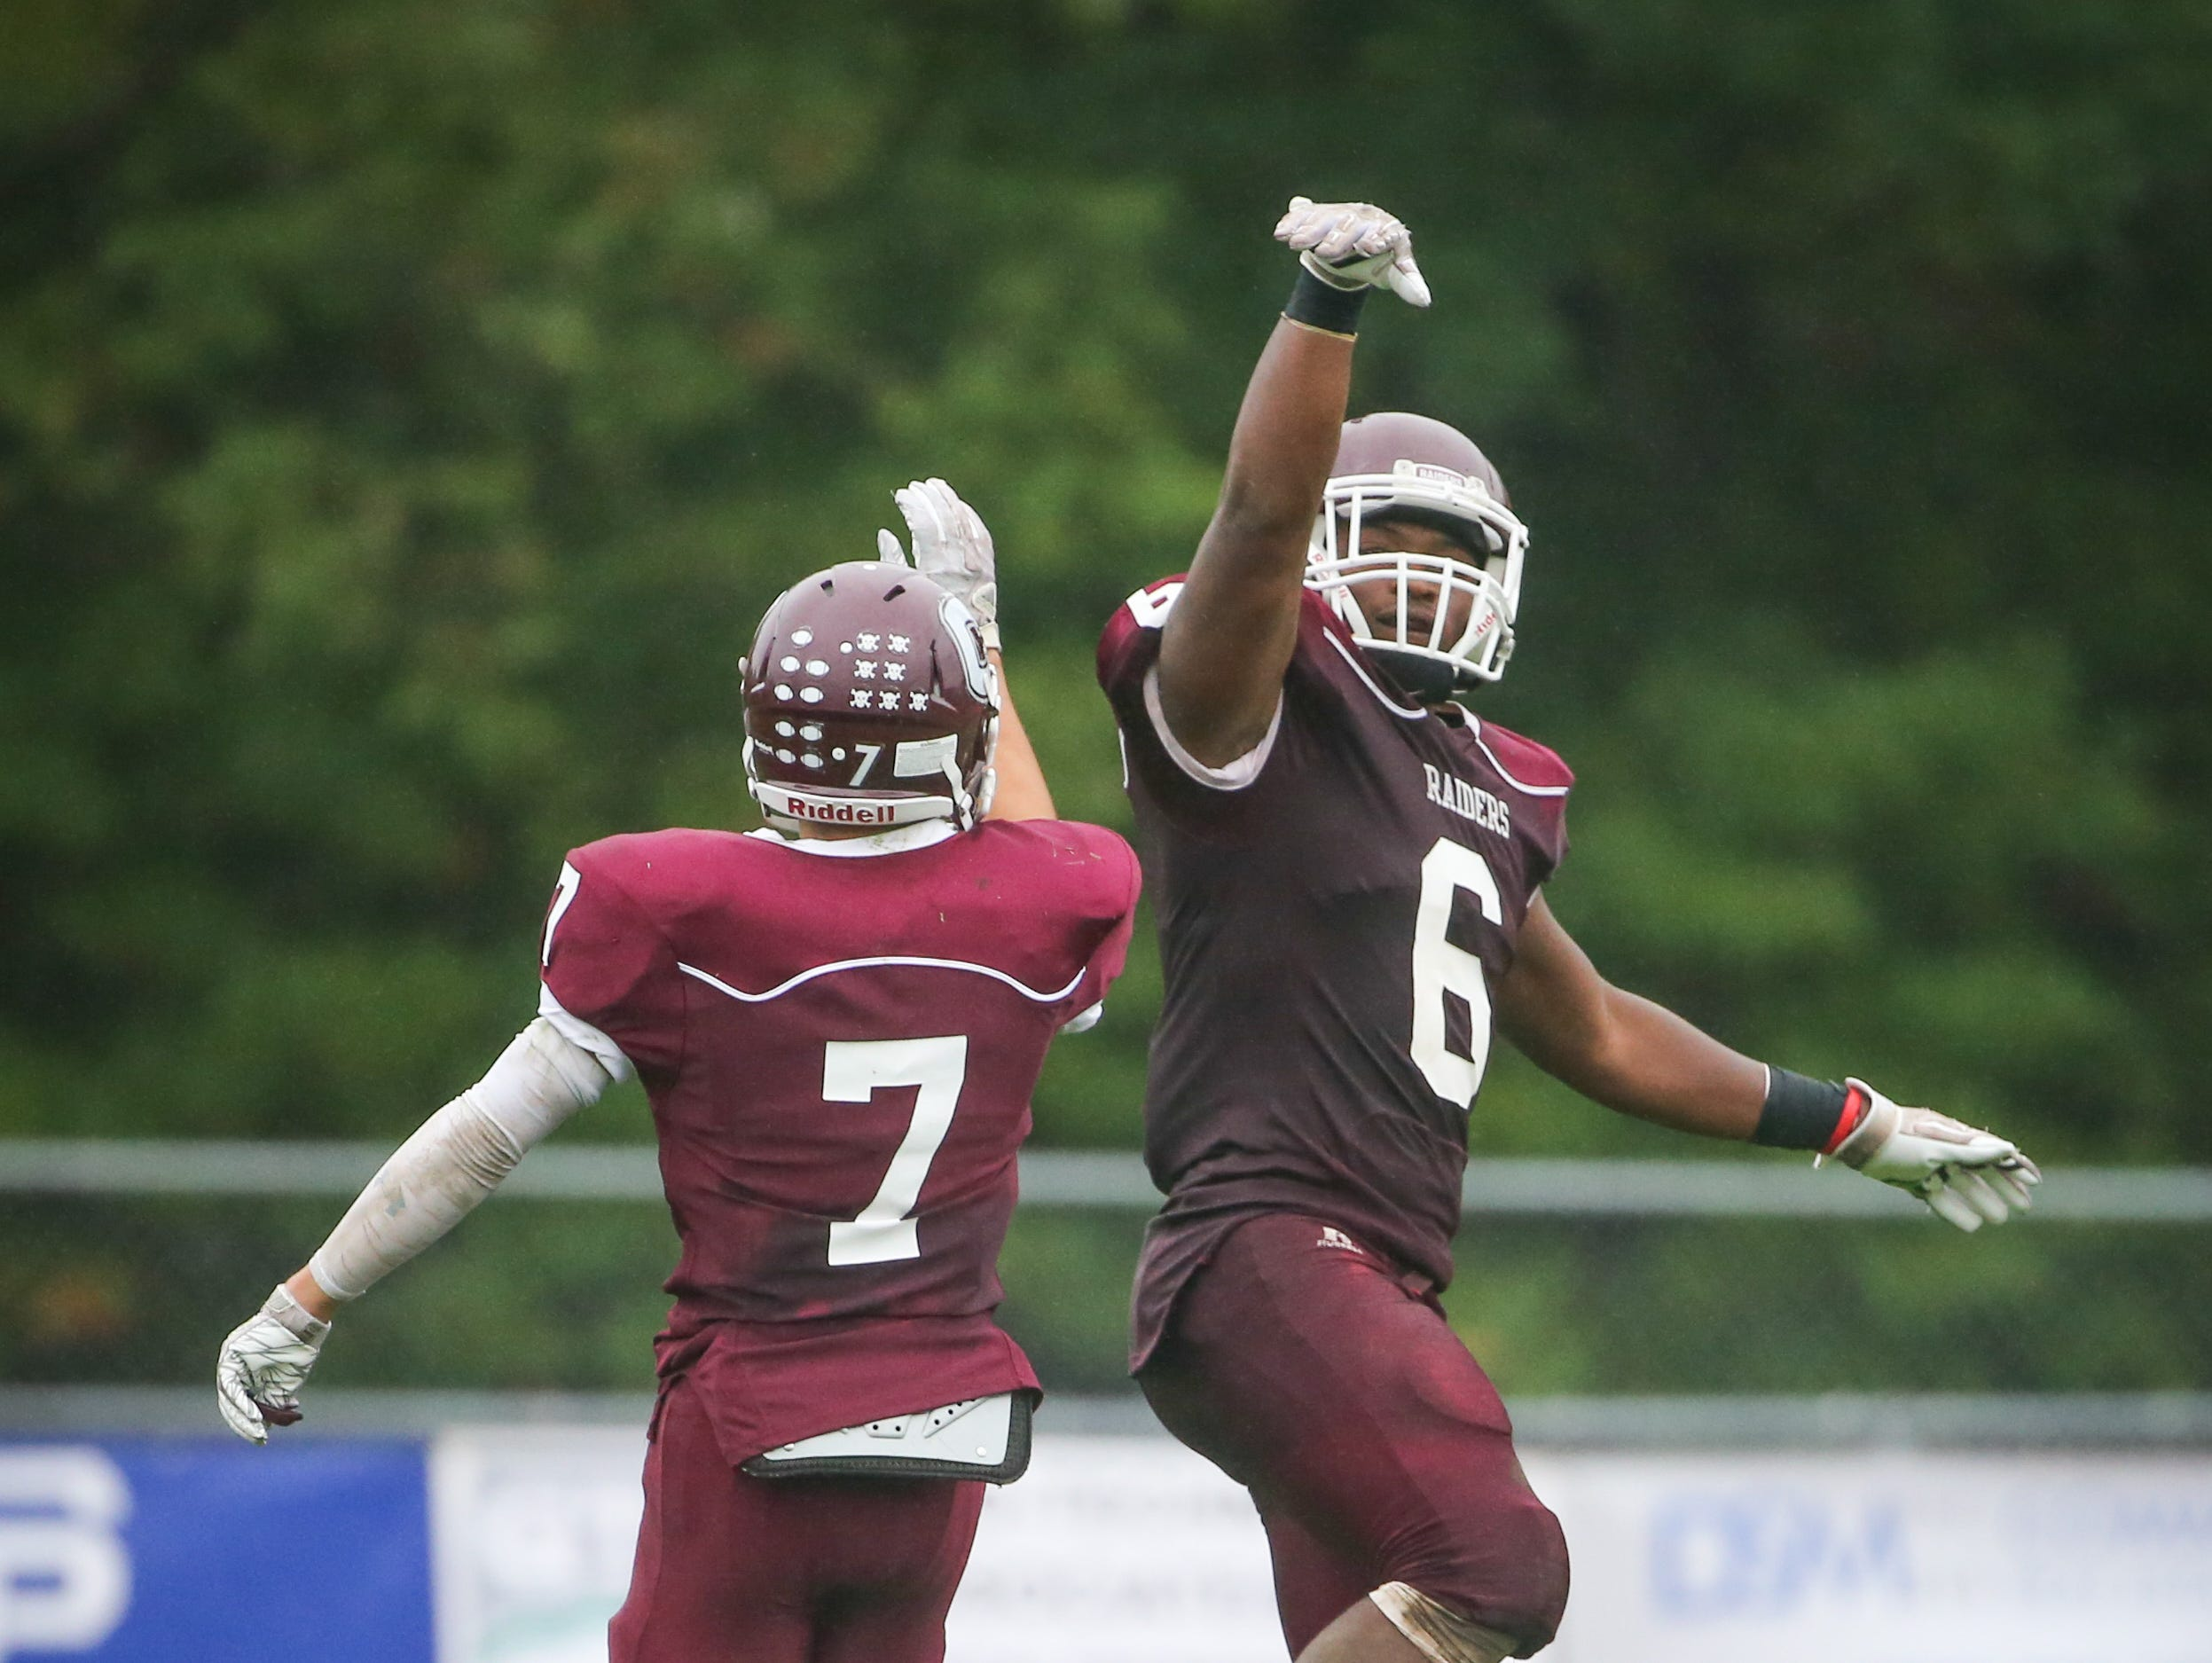 Concord's Grahm Roberts, No. 6, celebrates a 39-yard touchdown run with Luis Echevarria. Concord defeats Appoquinimink 30-0 at Concord Saturday.